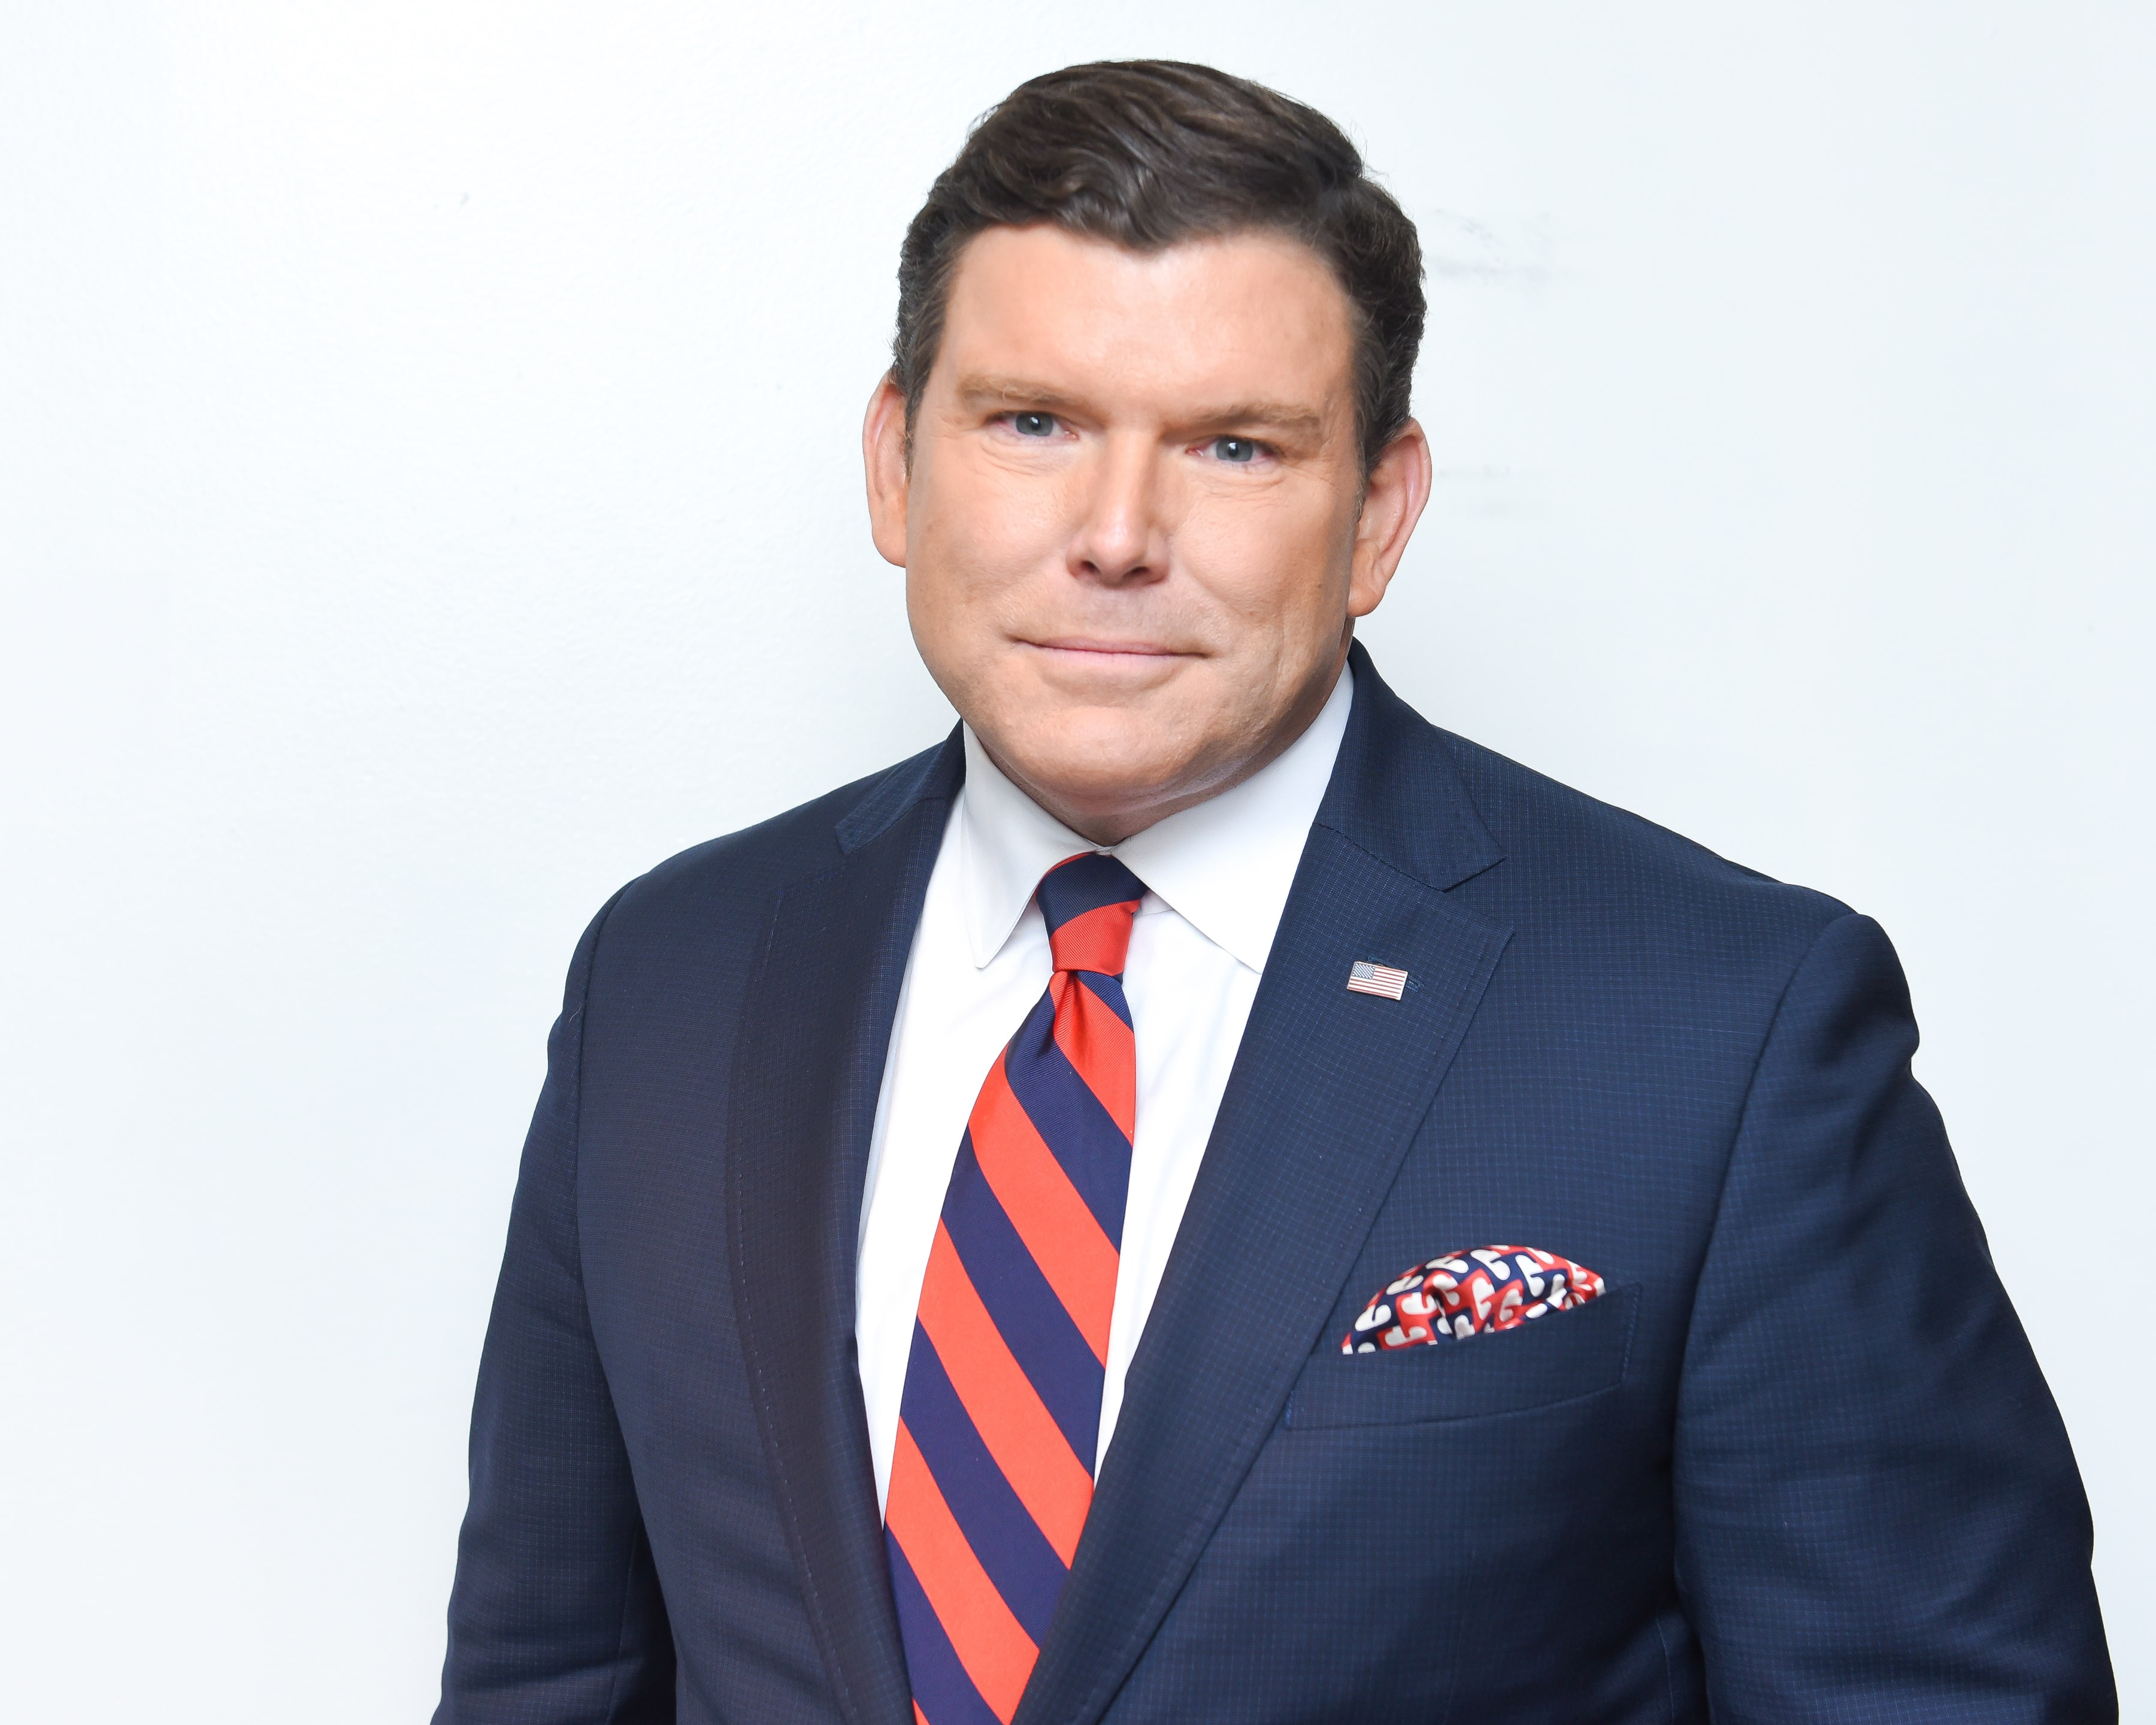 Bret Baier on 10 Years at Fox News' 'Special Report' & the True Anchor of His Life